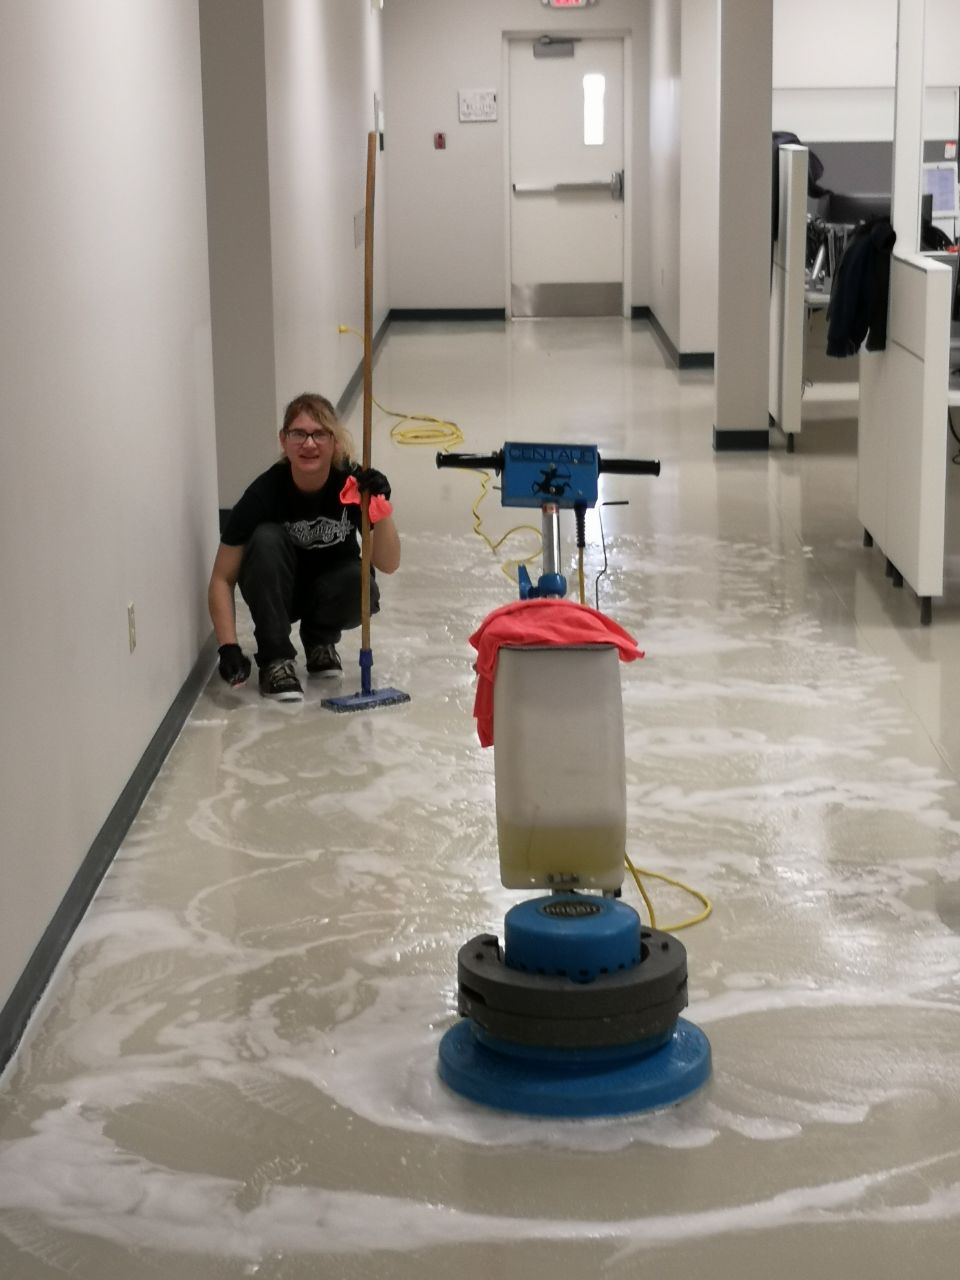 commercial floor cleaning machine